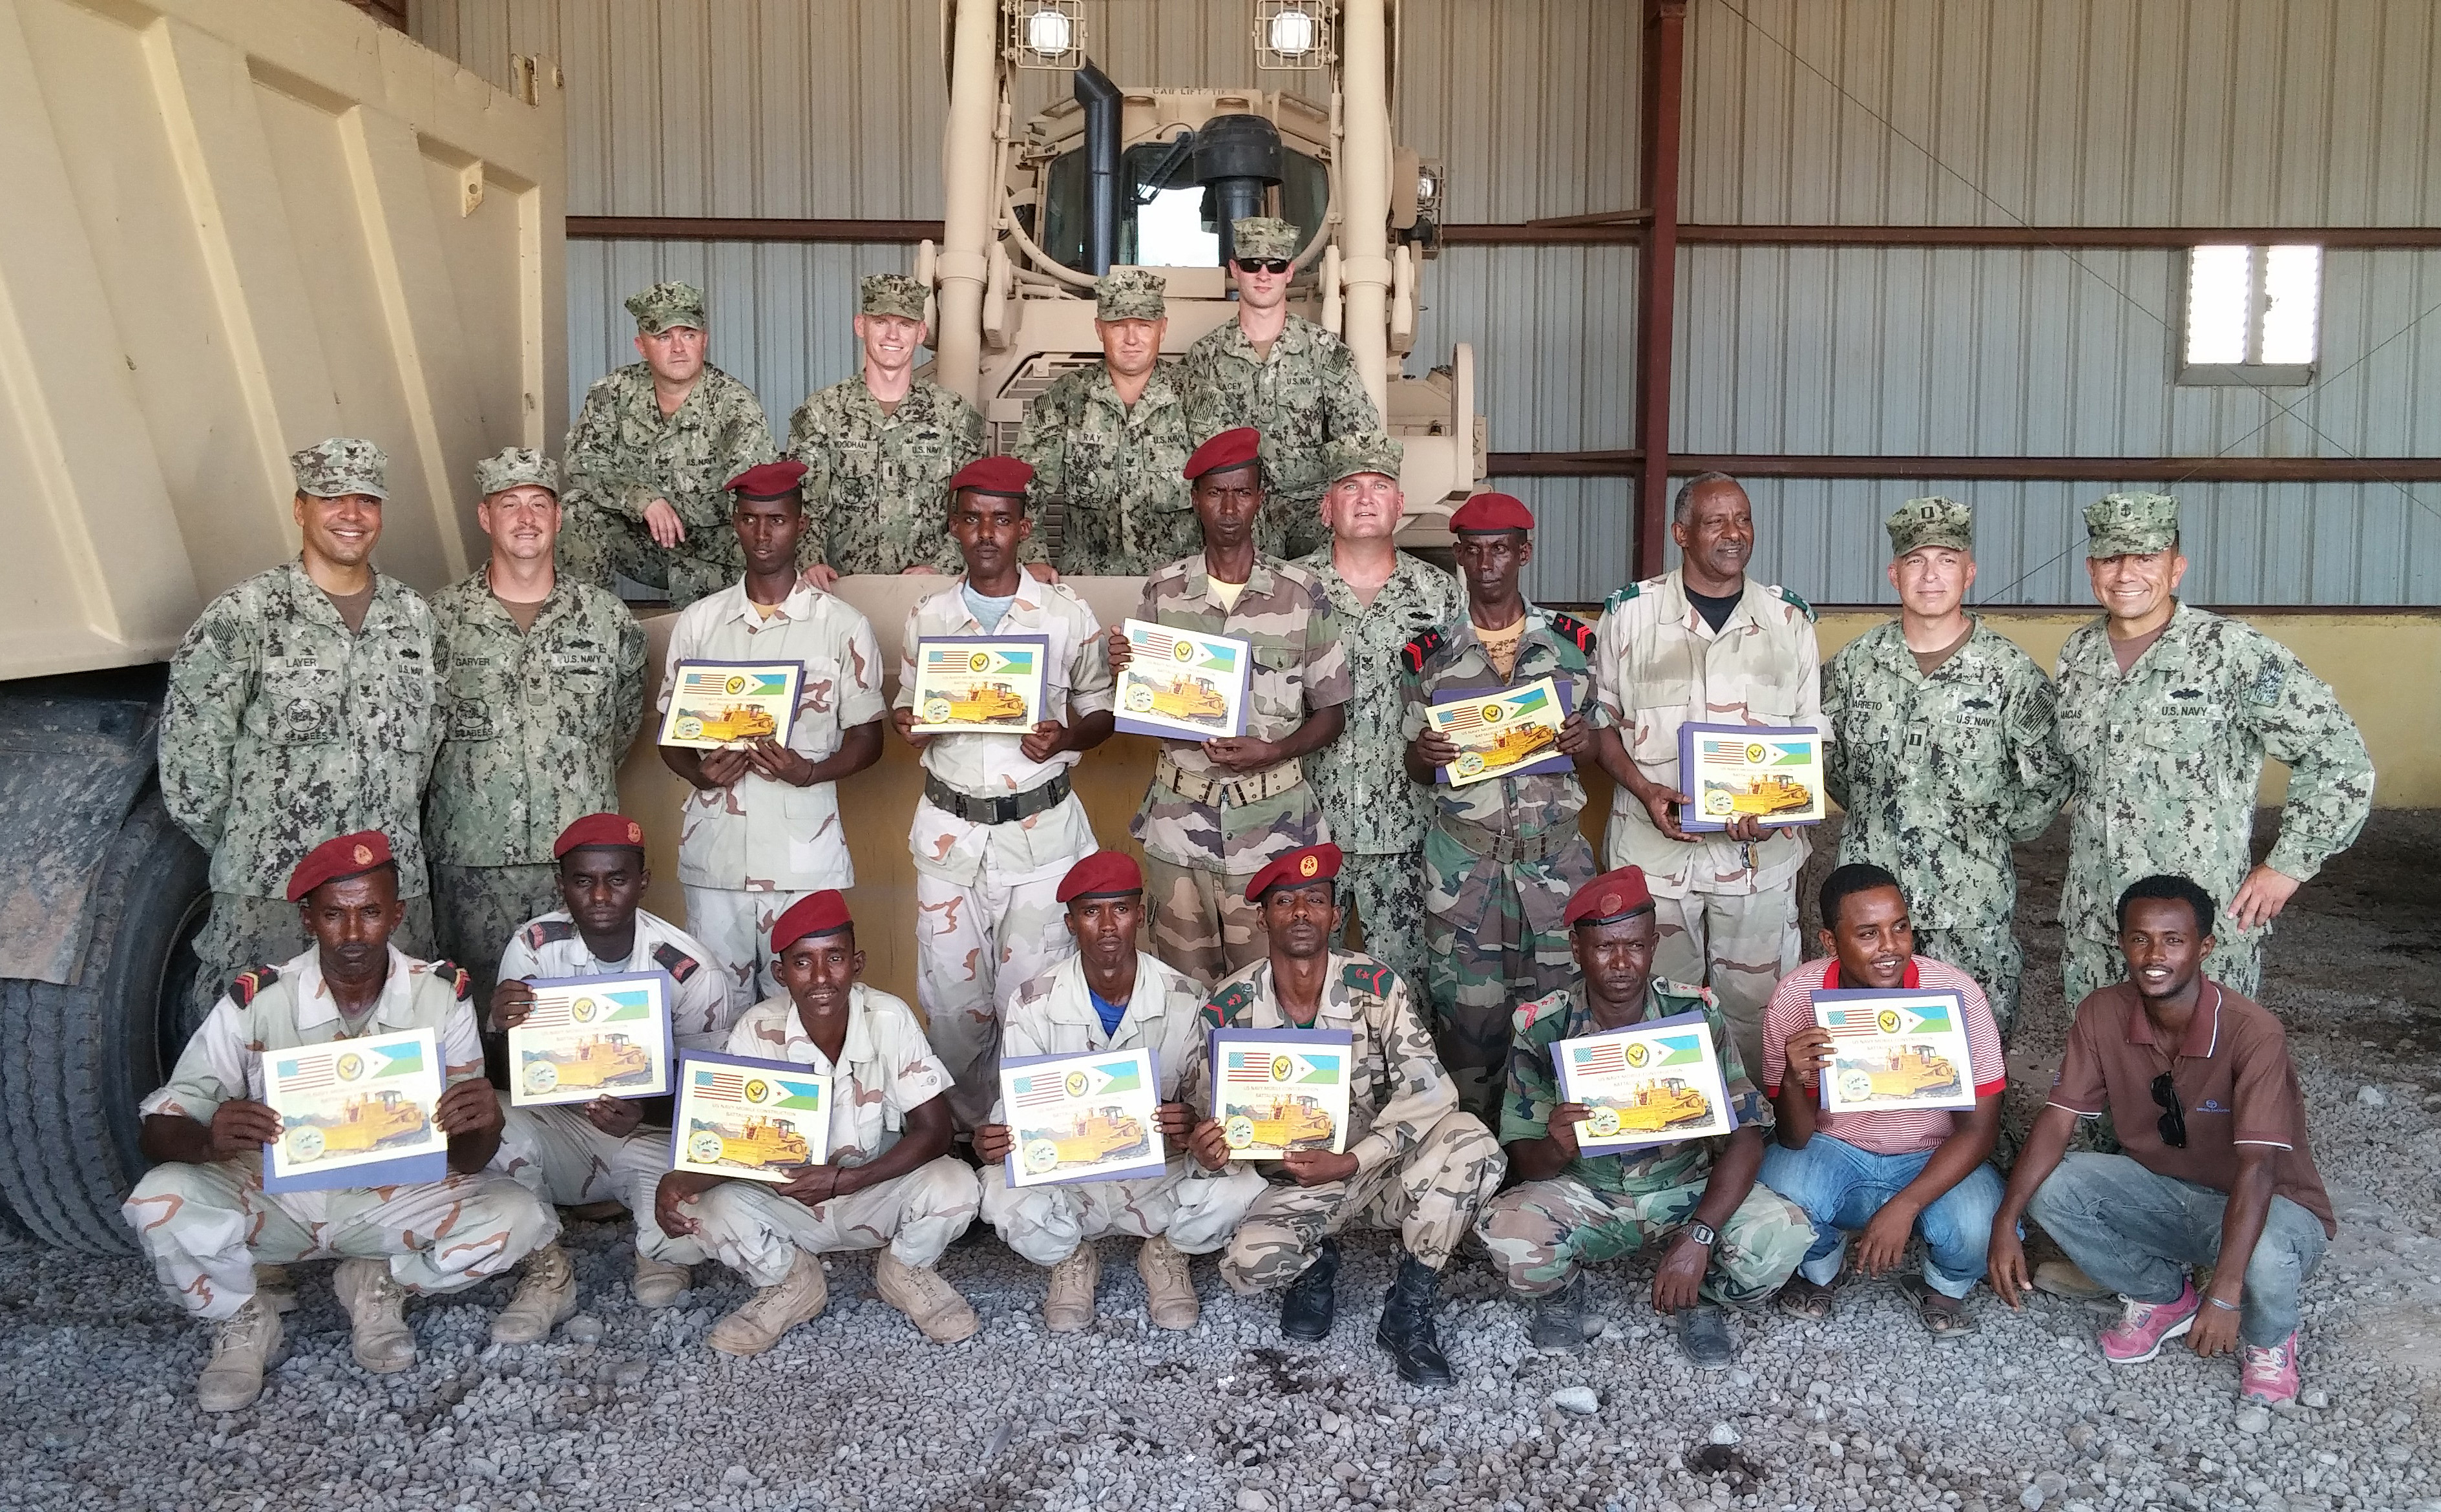 Camp Lemonnier , Djibouti (May 12, 2015) U.S. Navy Seabees of Naval Mobile Construction Battalion (NMCB) 14 pose with members of the Djiboutian Army's Construction Engineers in front of new D7 Dozers after an awards ceremony at the close of a U.S. Army-led training evolution. NMCB-14 Detachment HOA is deployed to Camp Lemonnier in support of Combined Joint Task Force – Horn of Africa. (U.S. Navy photo by Chief Petty Officer Ellery Sayre)